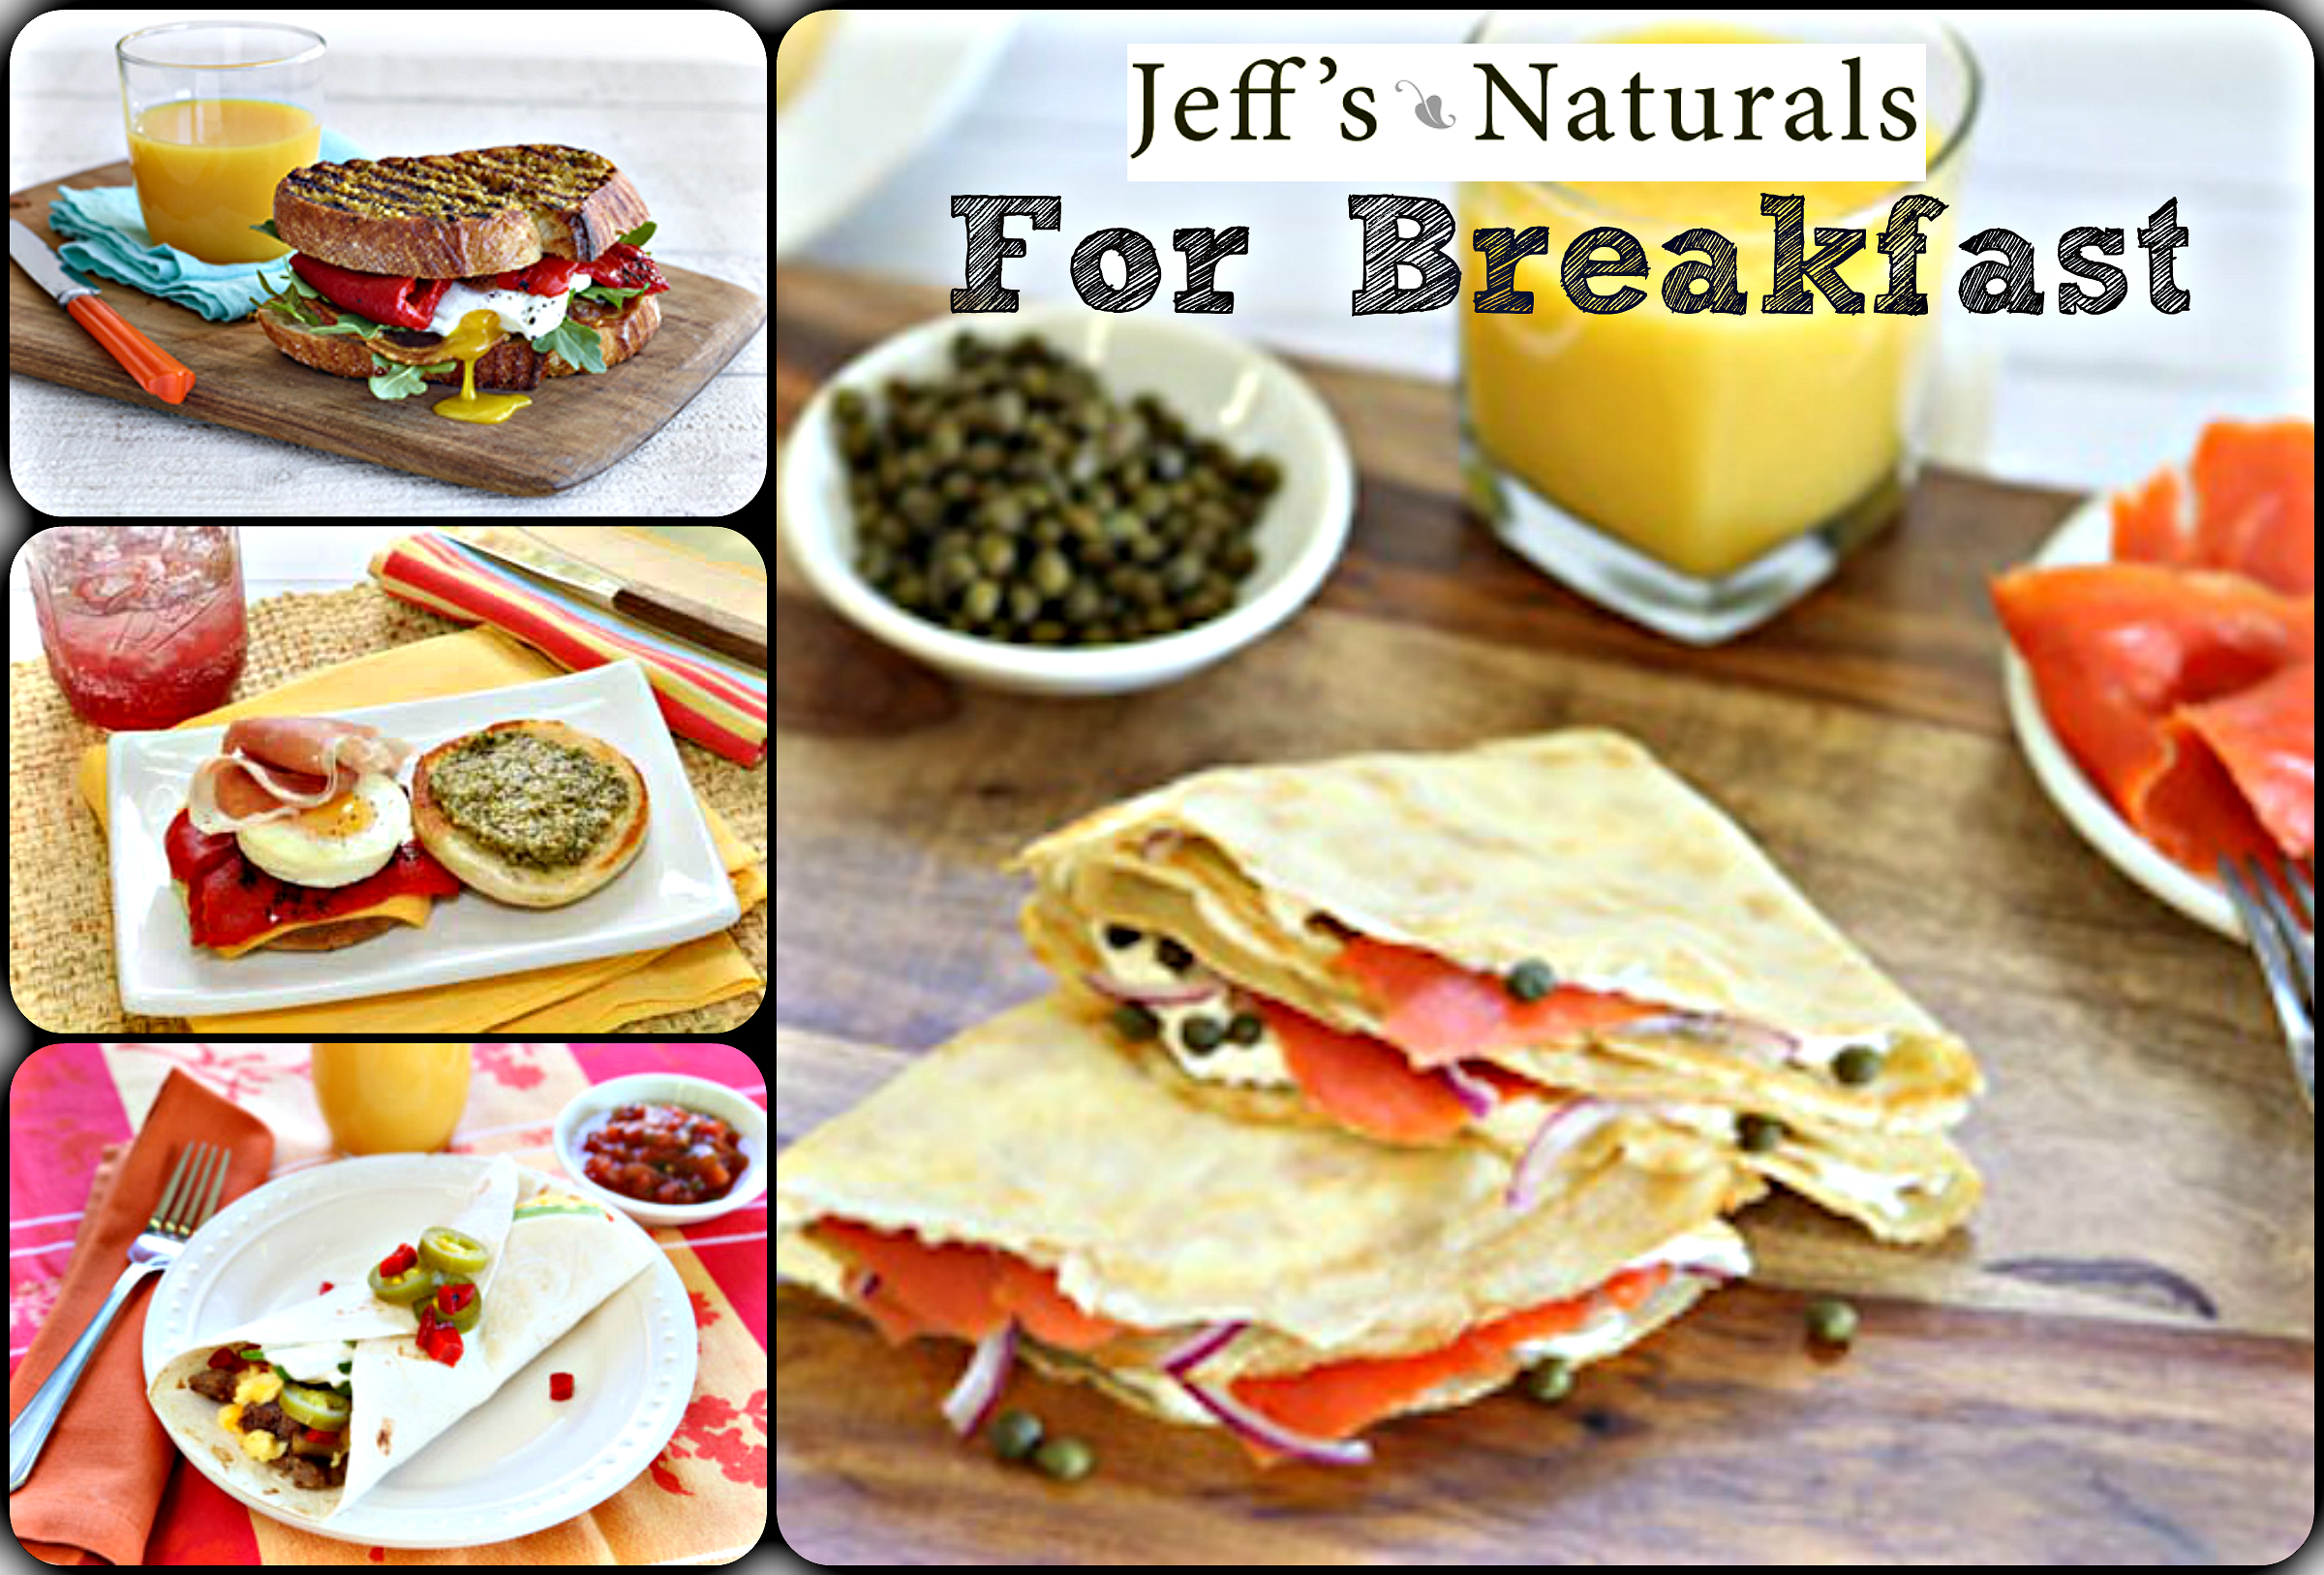 Jeff's Naturals for Breakfast